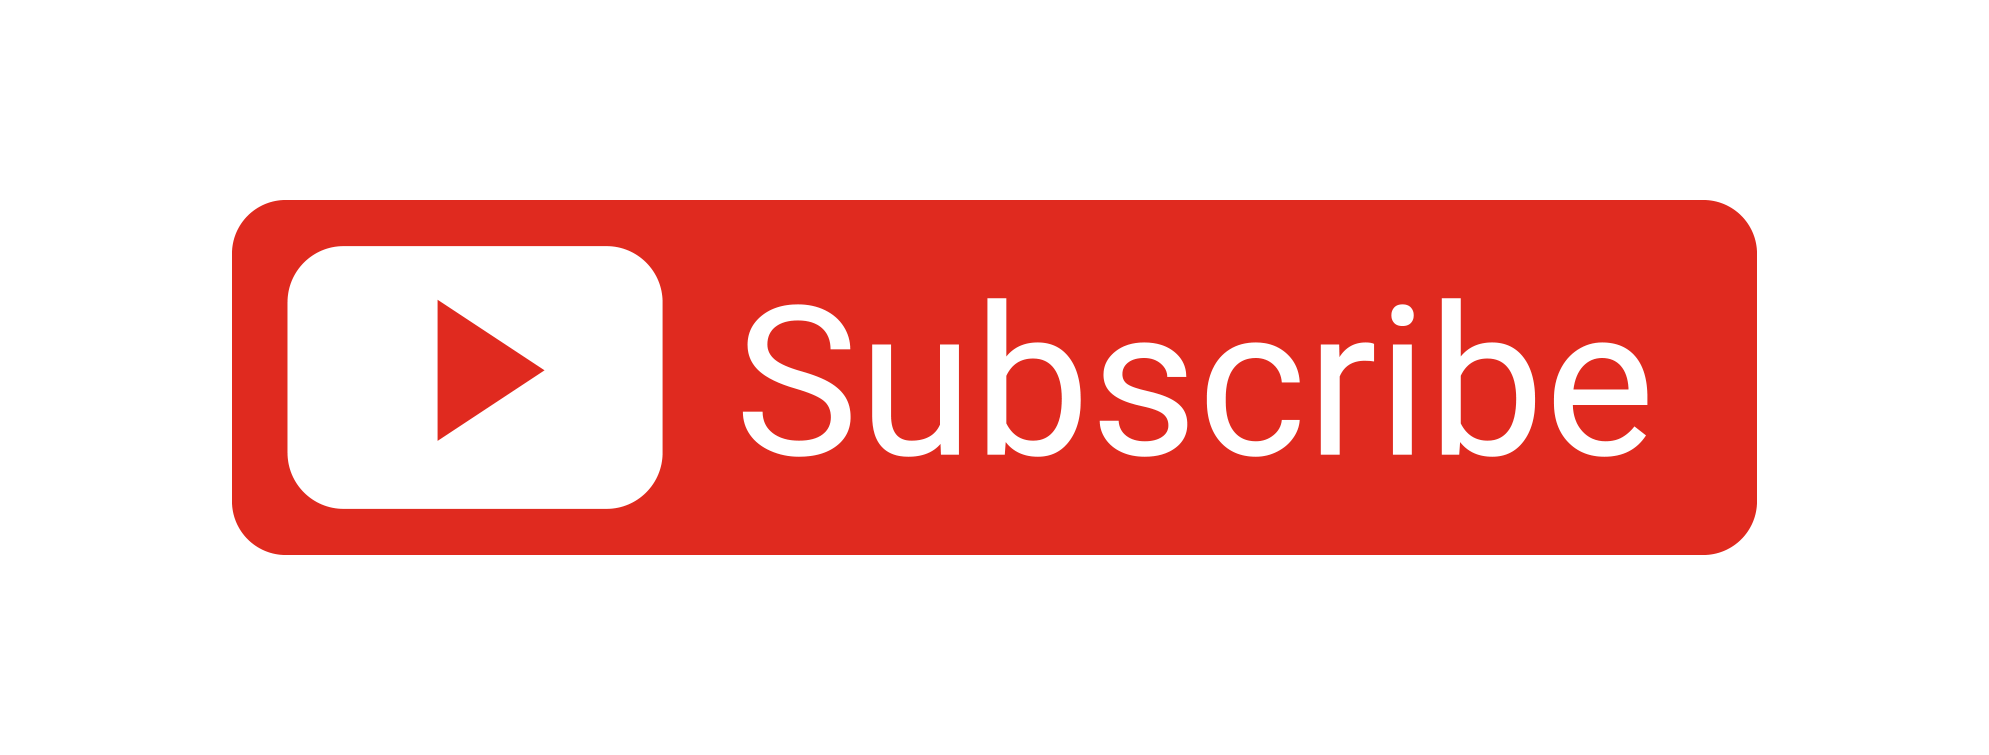 how to get more views on youtube - ask people to subscribe